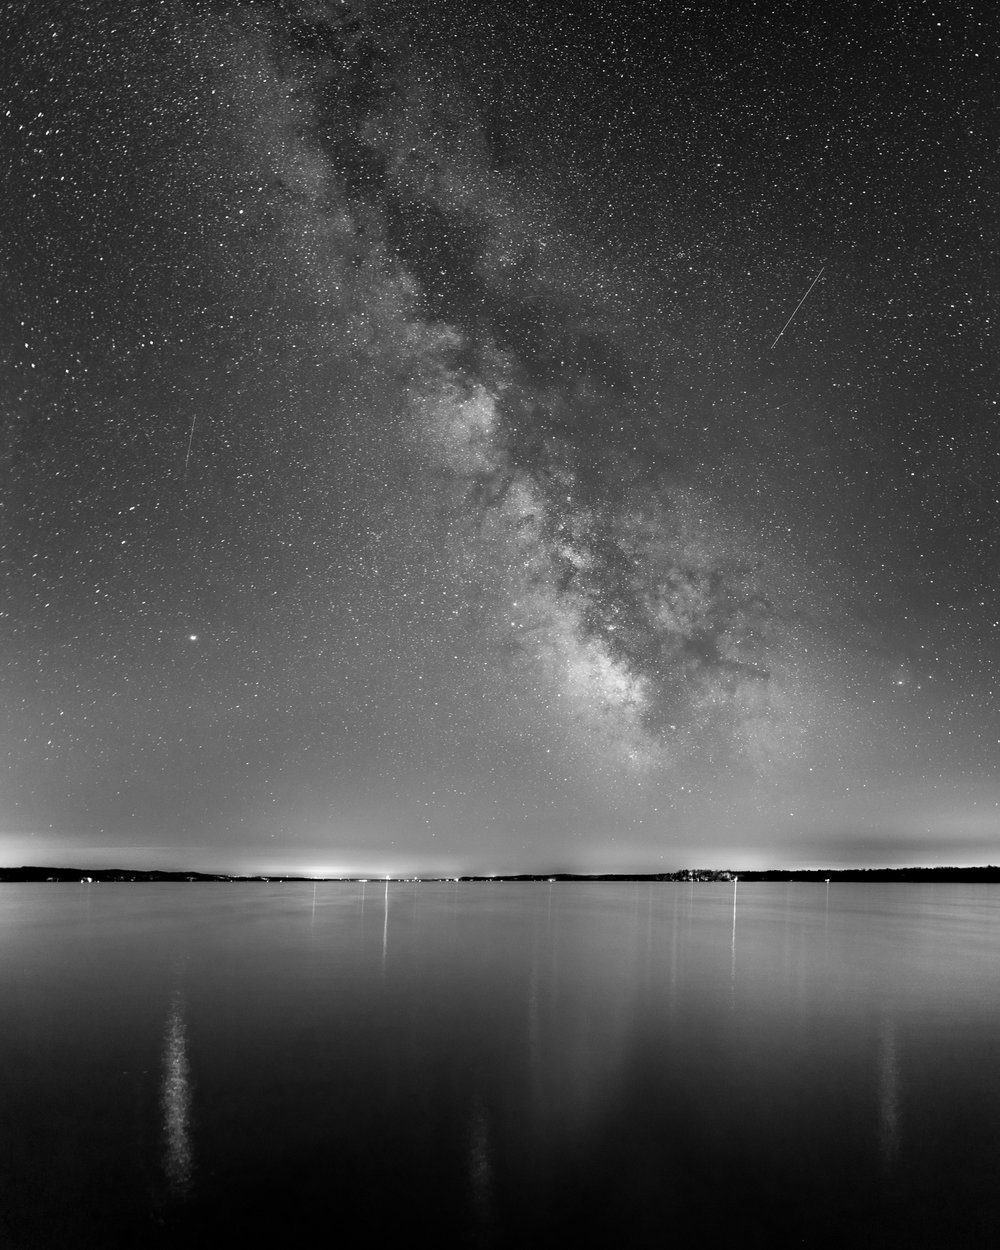 Milky Way Galaxy over Torch Lake